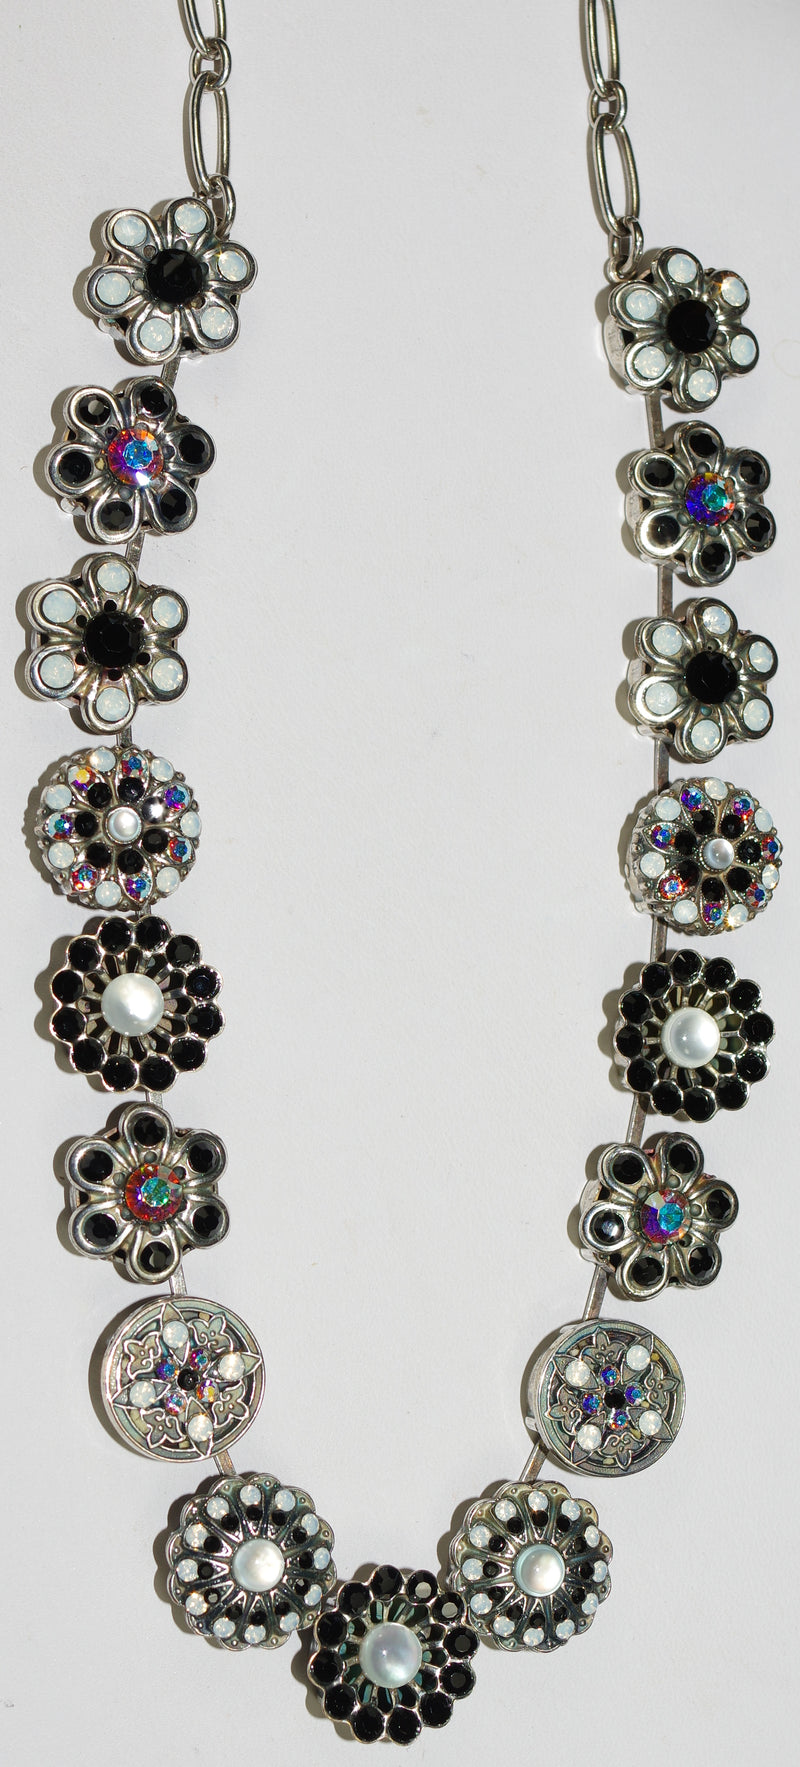 "MARIANA NECKLACE ST MARTIN: 5/8"" black, a/b, white stones, 18"" adjustable silver chain"